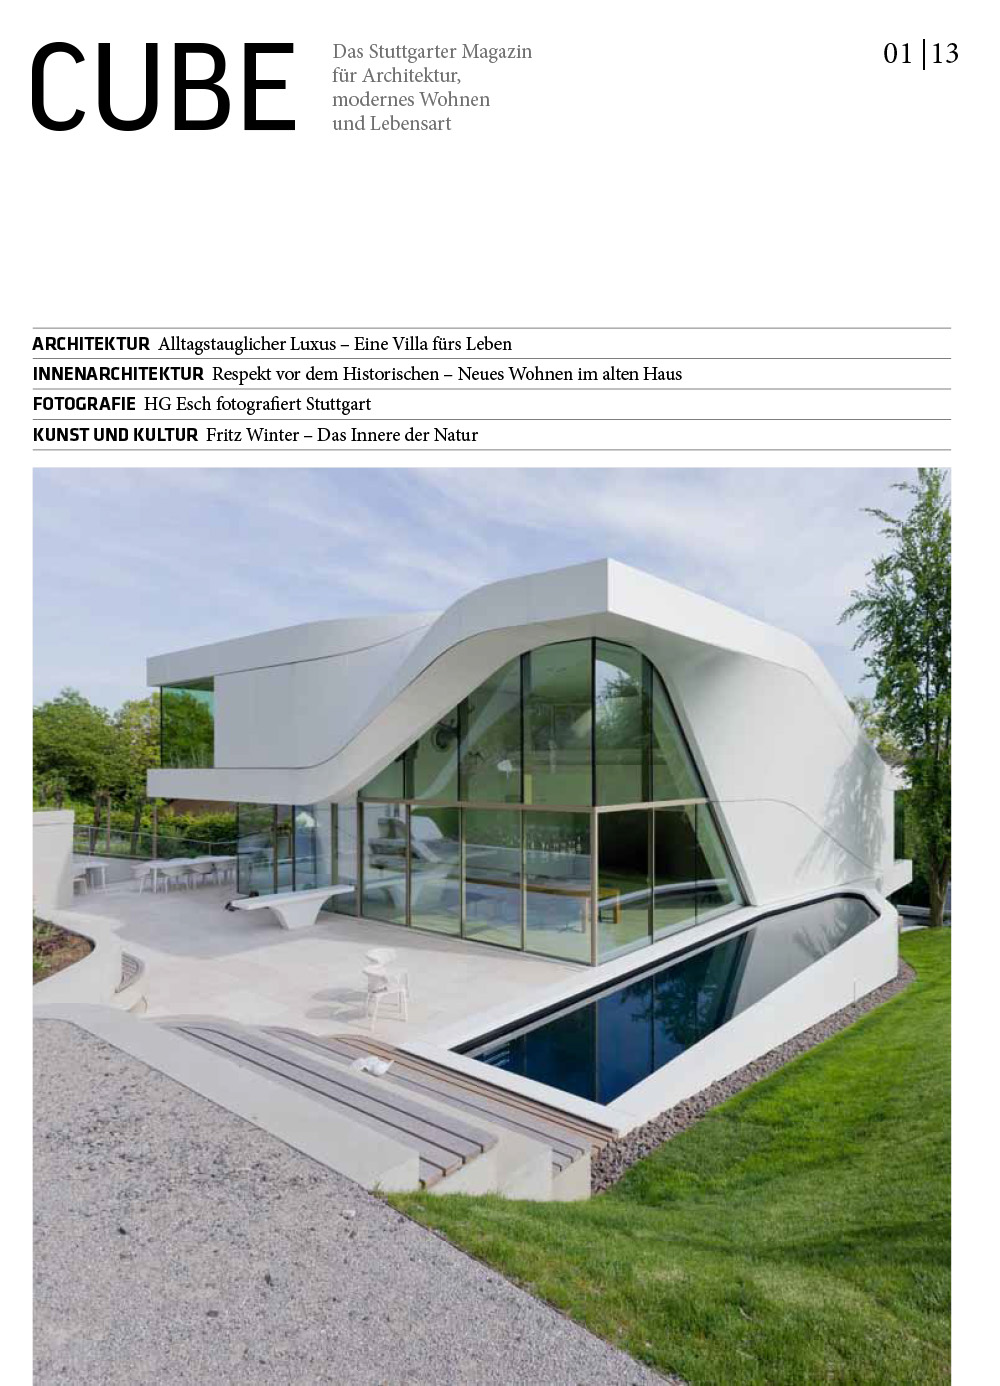 Publications - Alexander Brenner Architects - Villas and Houses